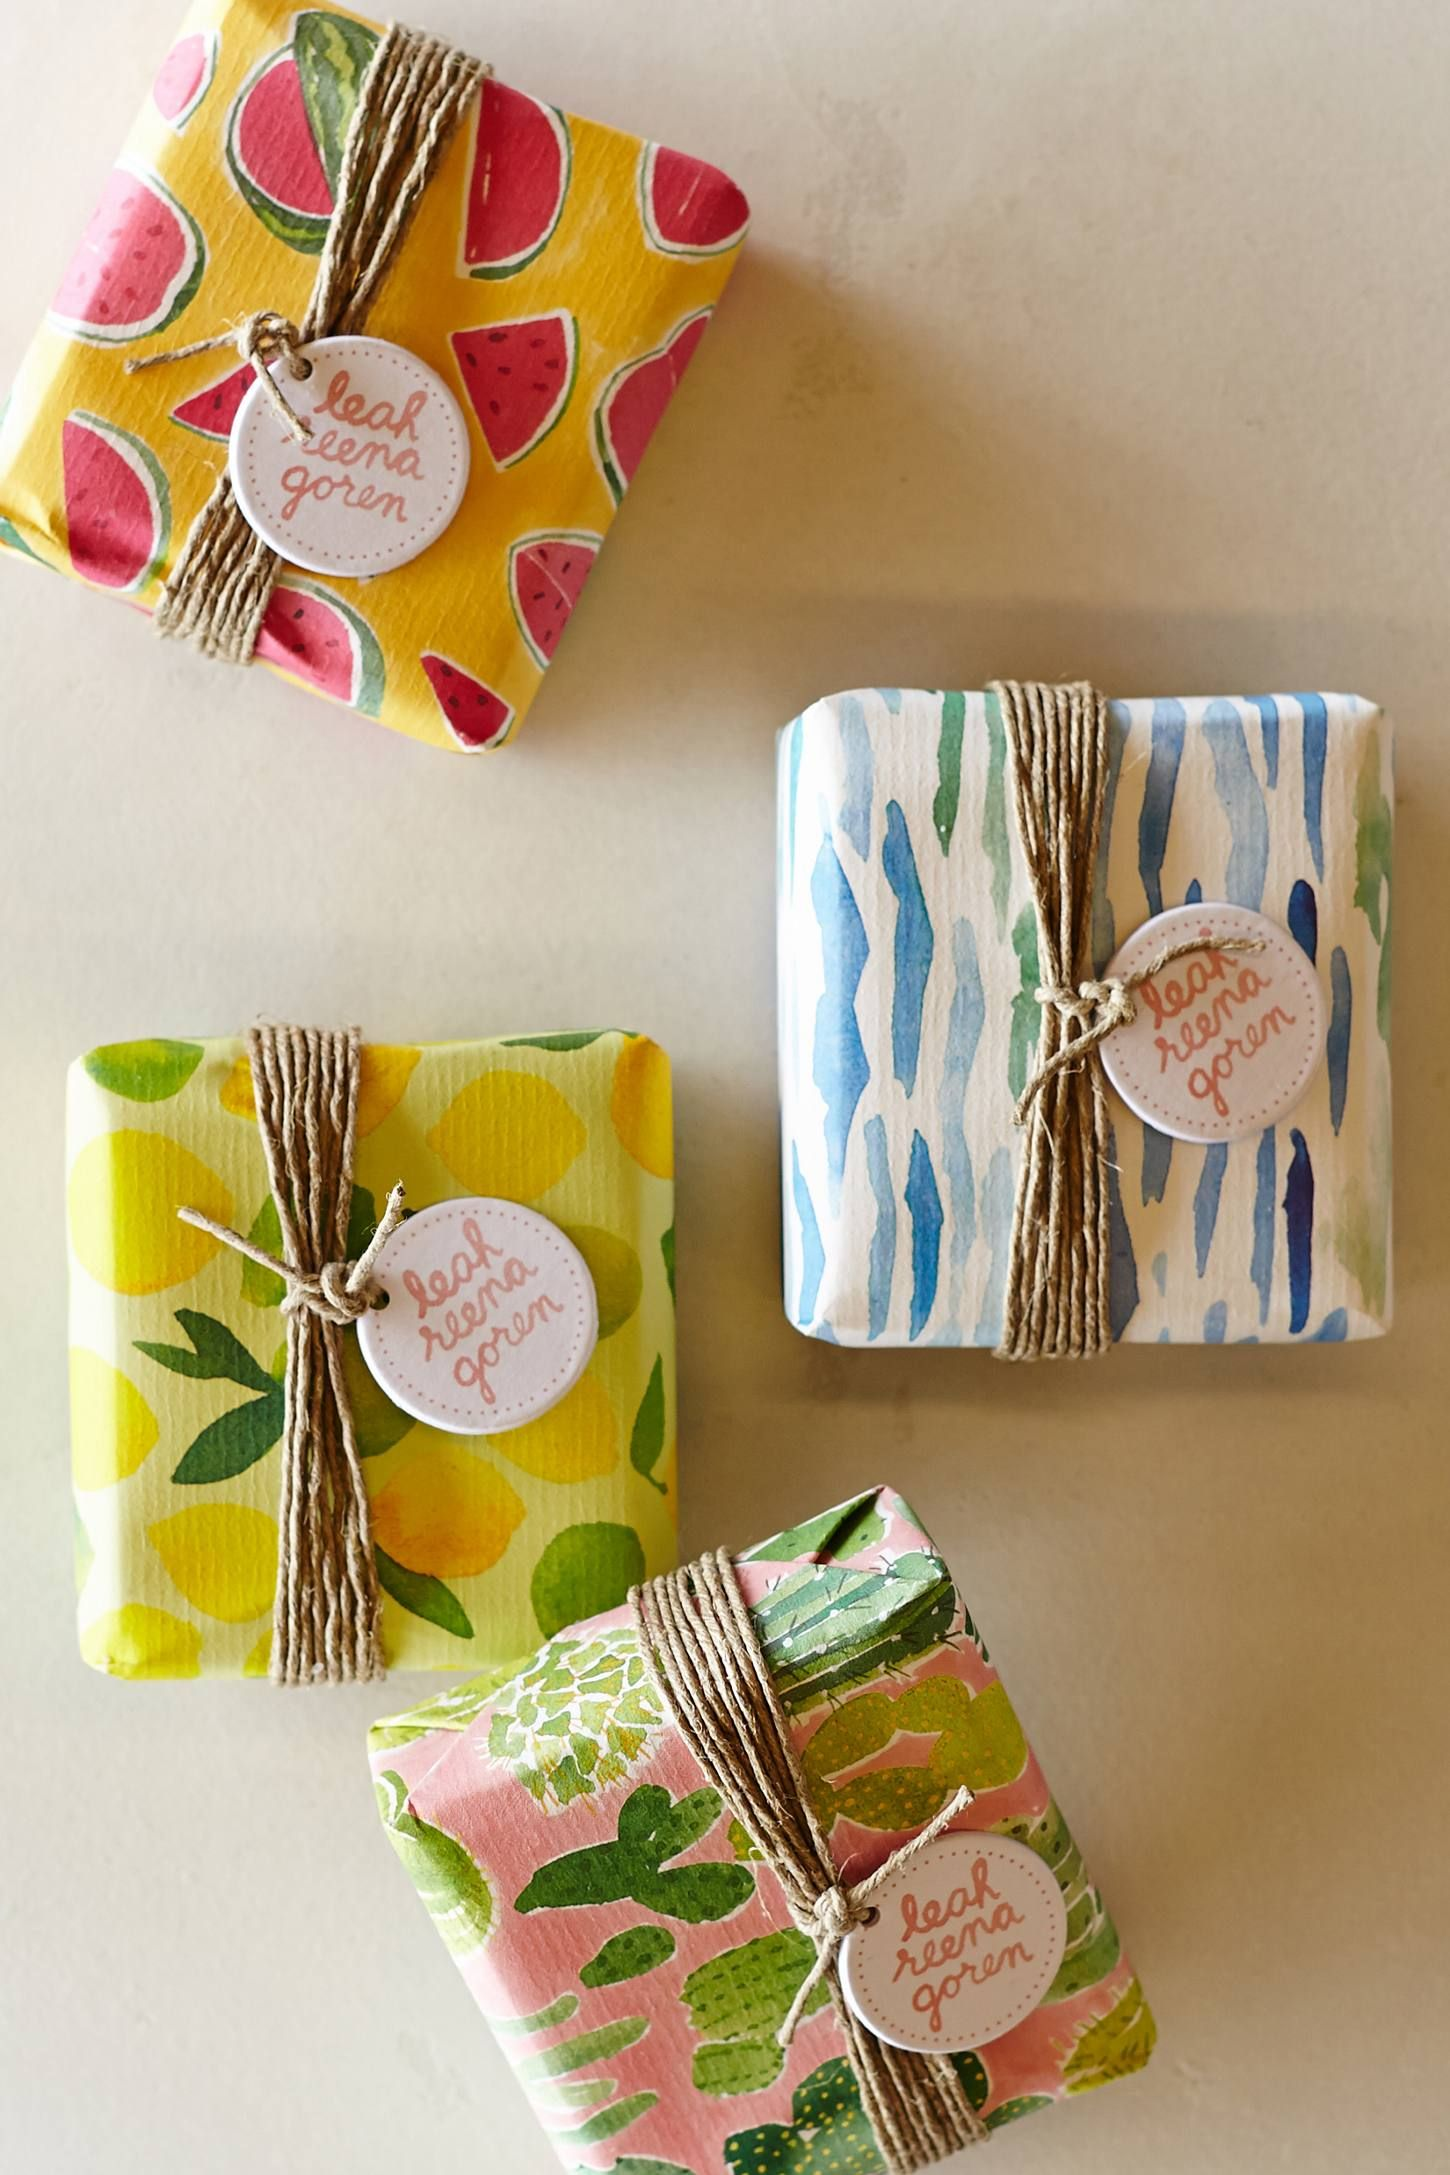 Idea envoltura regalos Gift Wrap Idea ideas Pinterest